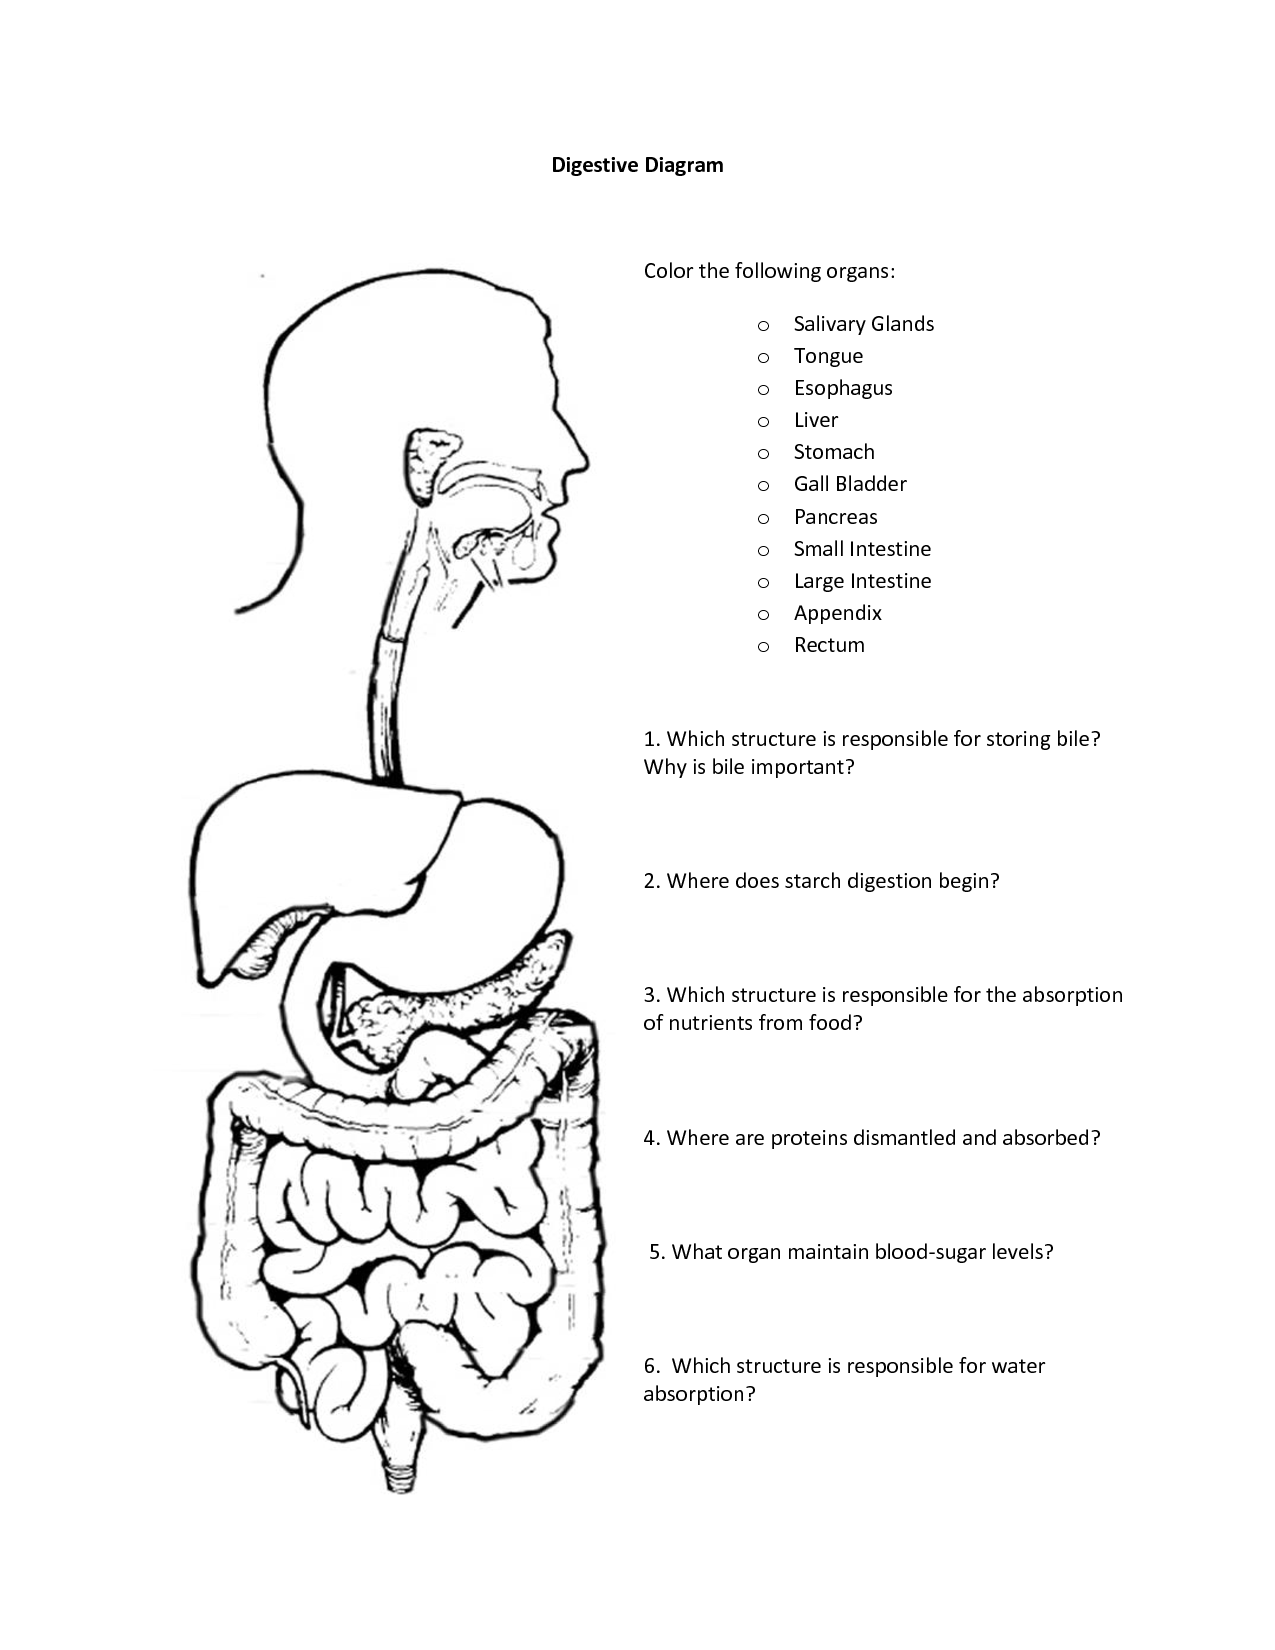 Digestive System Coloring Workbook Answers